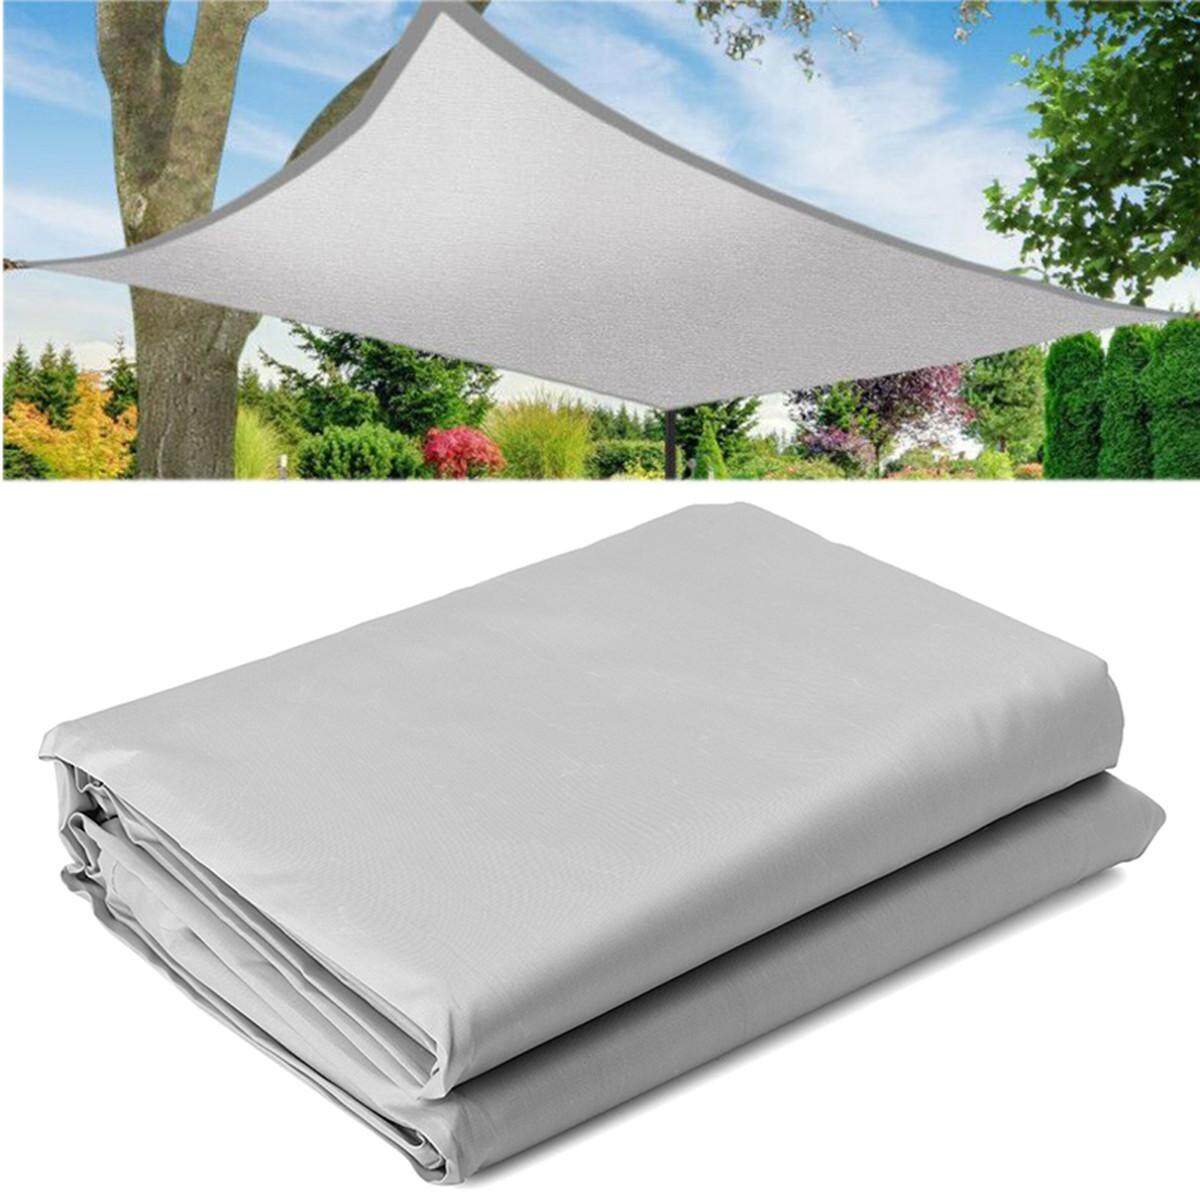 4*8m Rectangle Patio Sun Shade Sail Shelter Outdoor Garden Car Cover Awning Canopy Custom Size